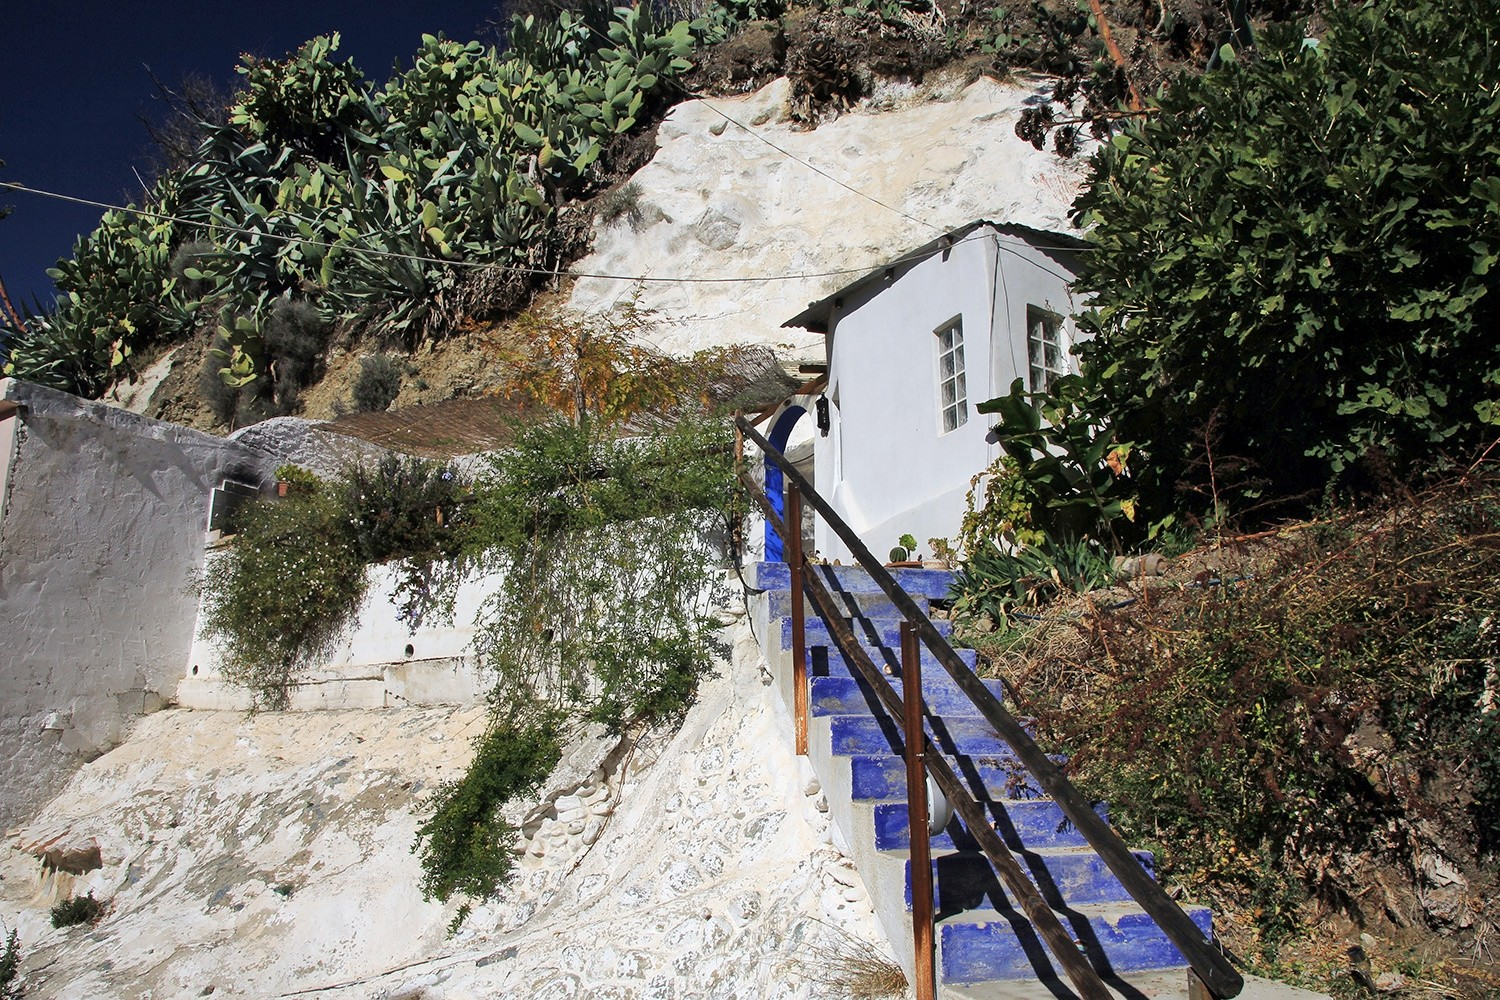 The stairs to the cave